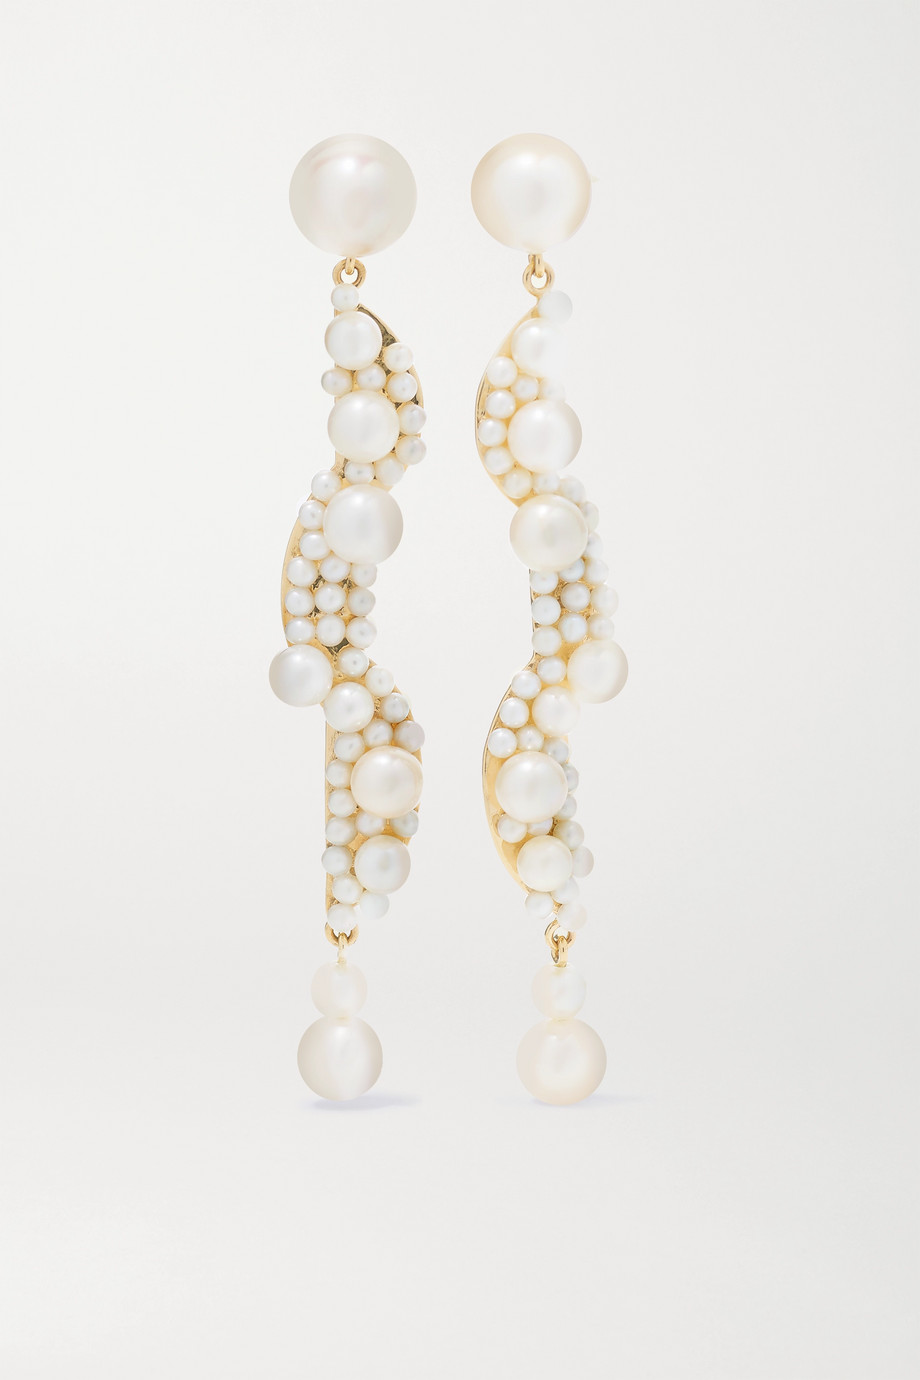 Sophie Bille Brahe Calder Perle 14-karat gold pearl earrings